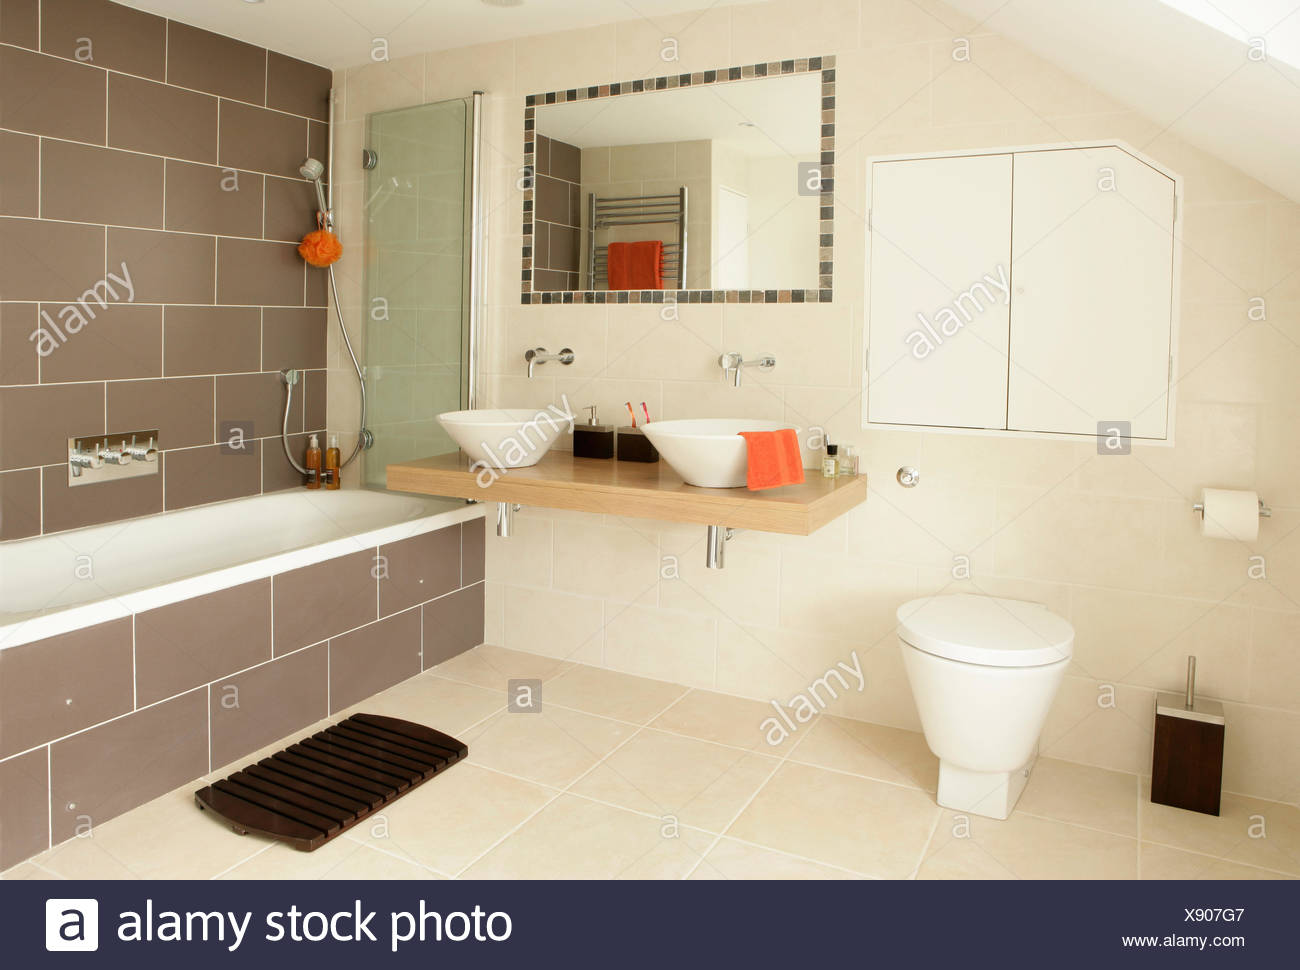 Tiled-framed mirror above white bowl basins on wooden vanity shelf ...